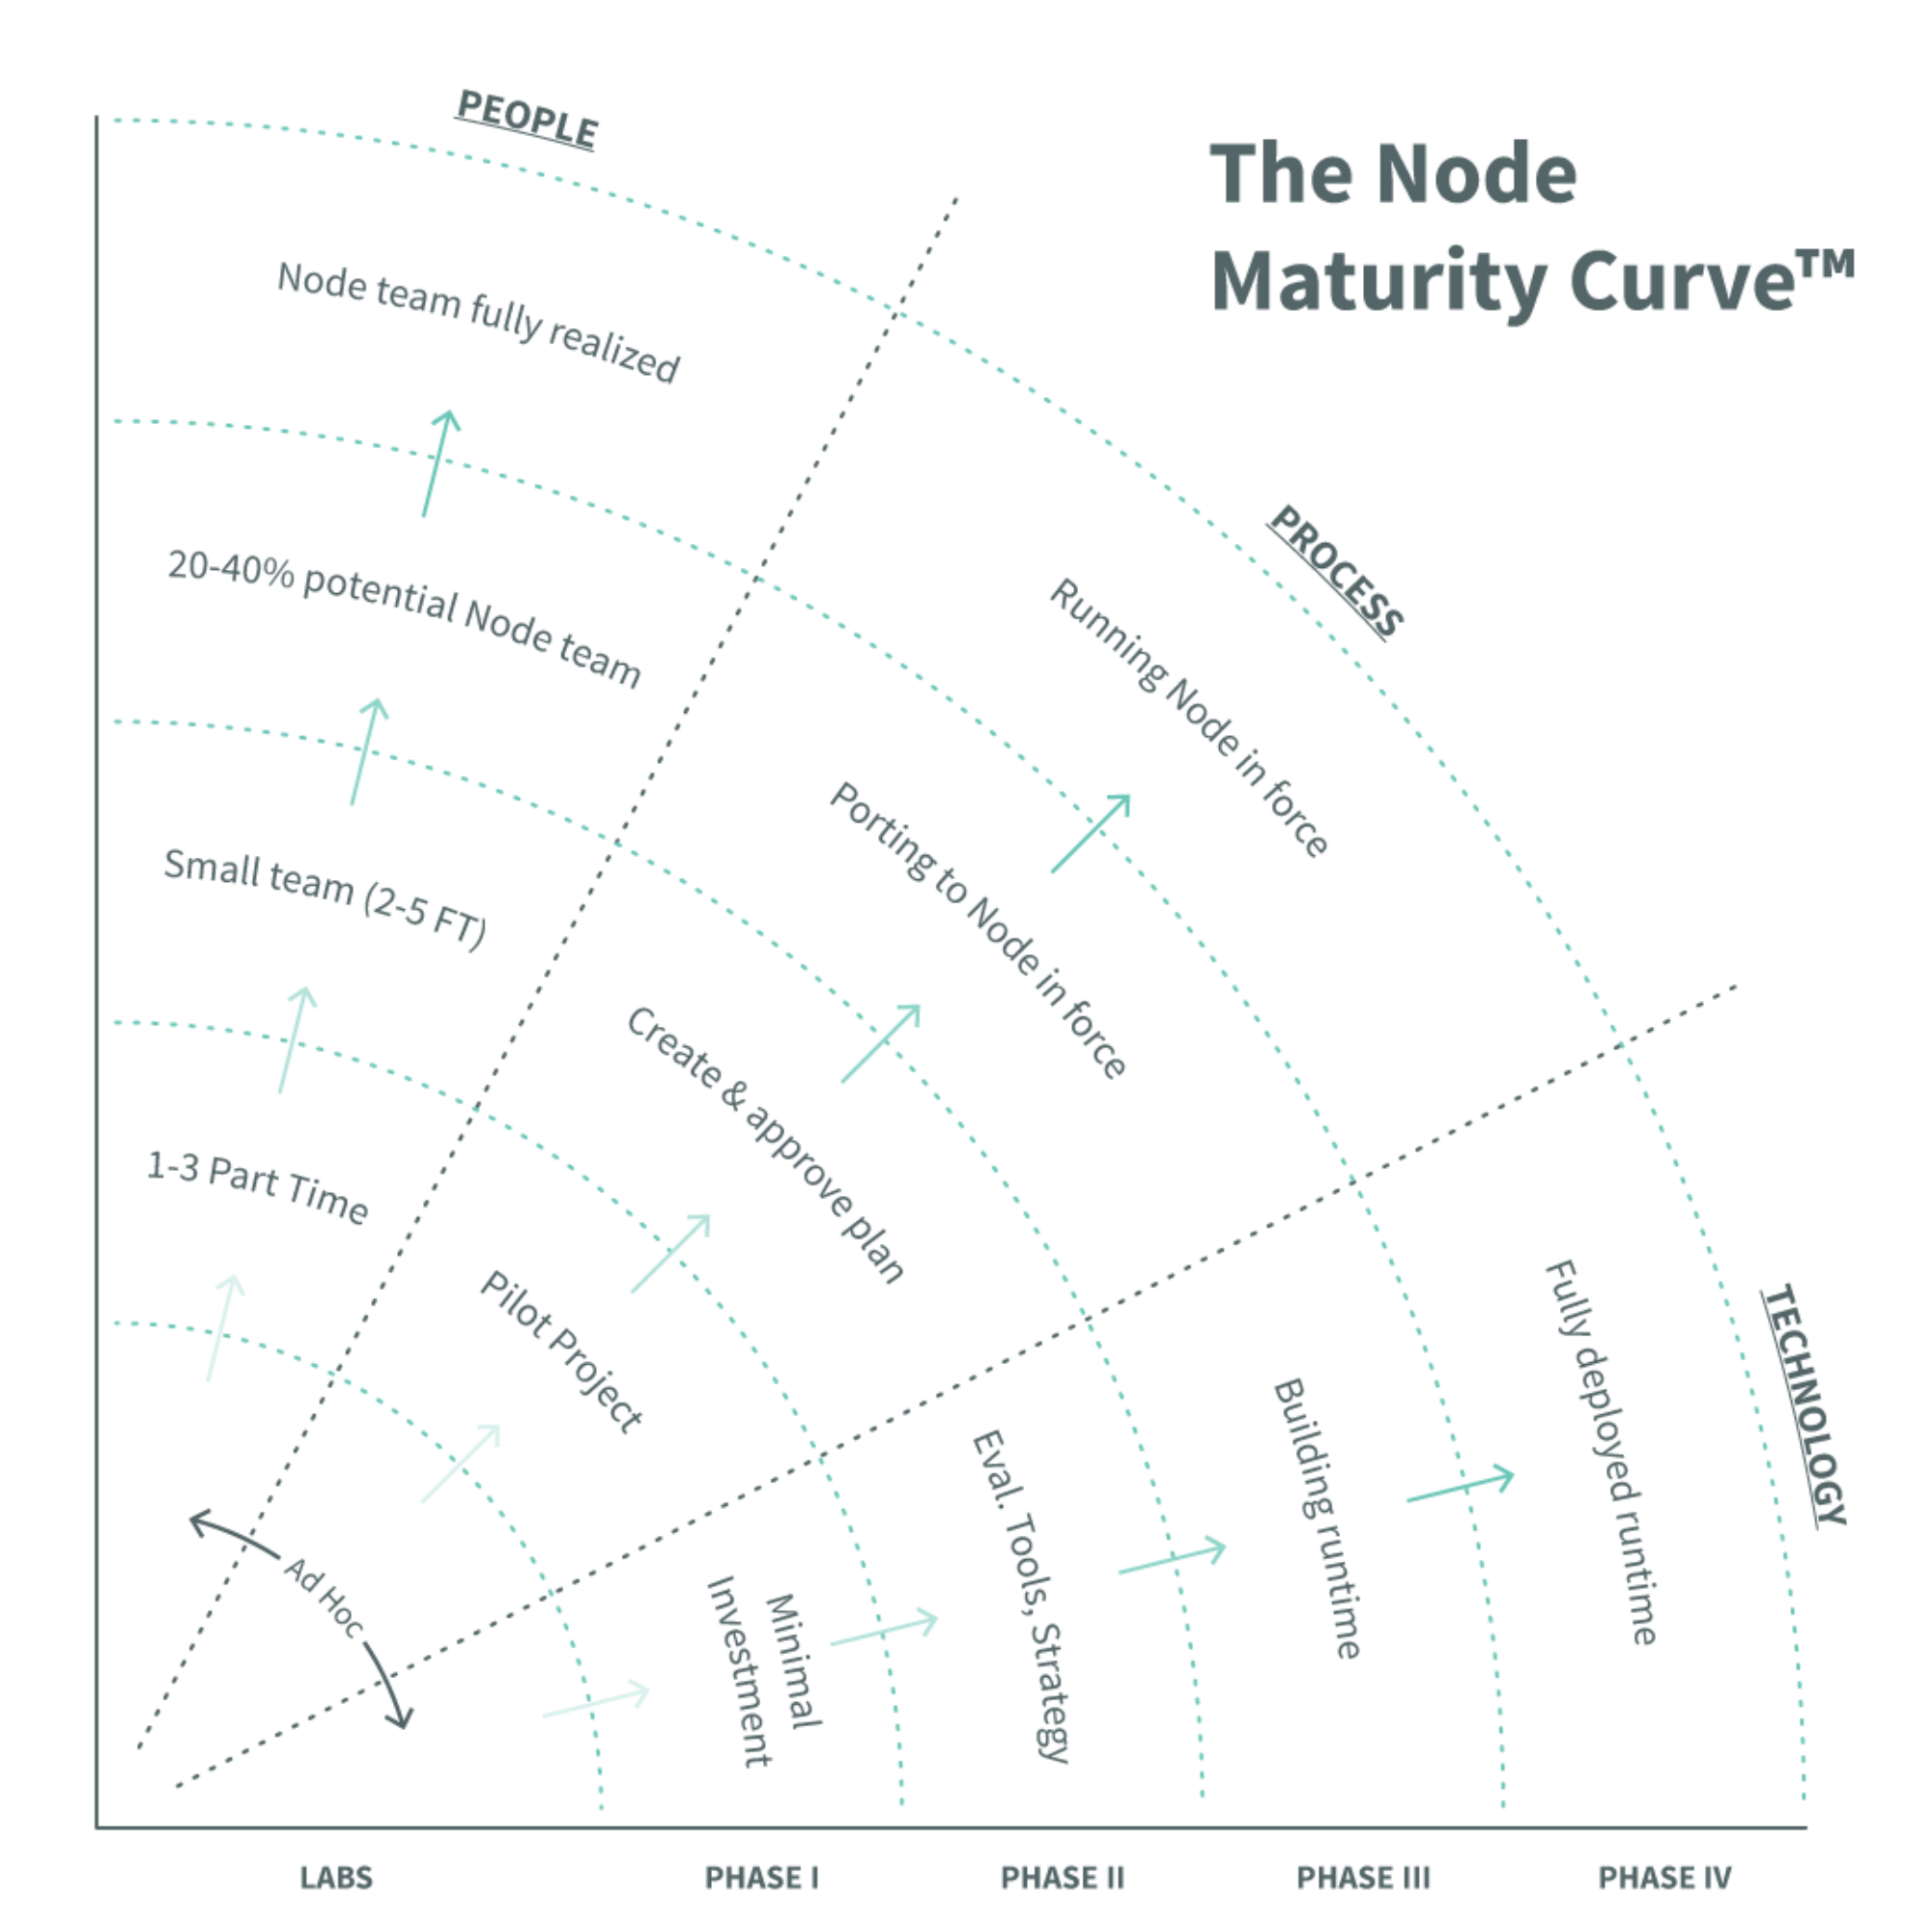 Node Maturity Curve